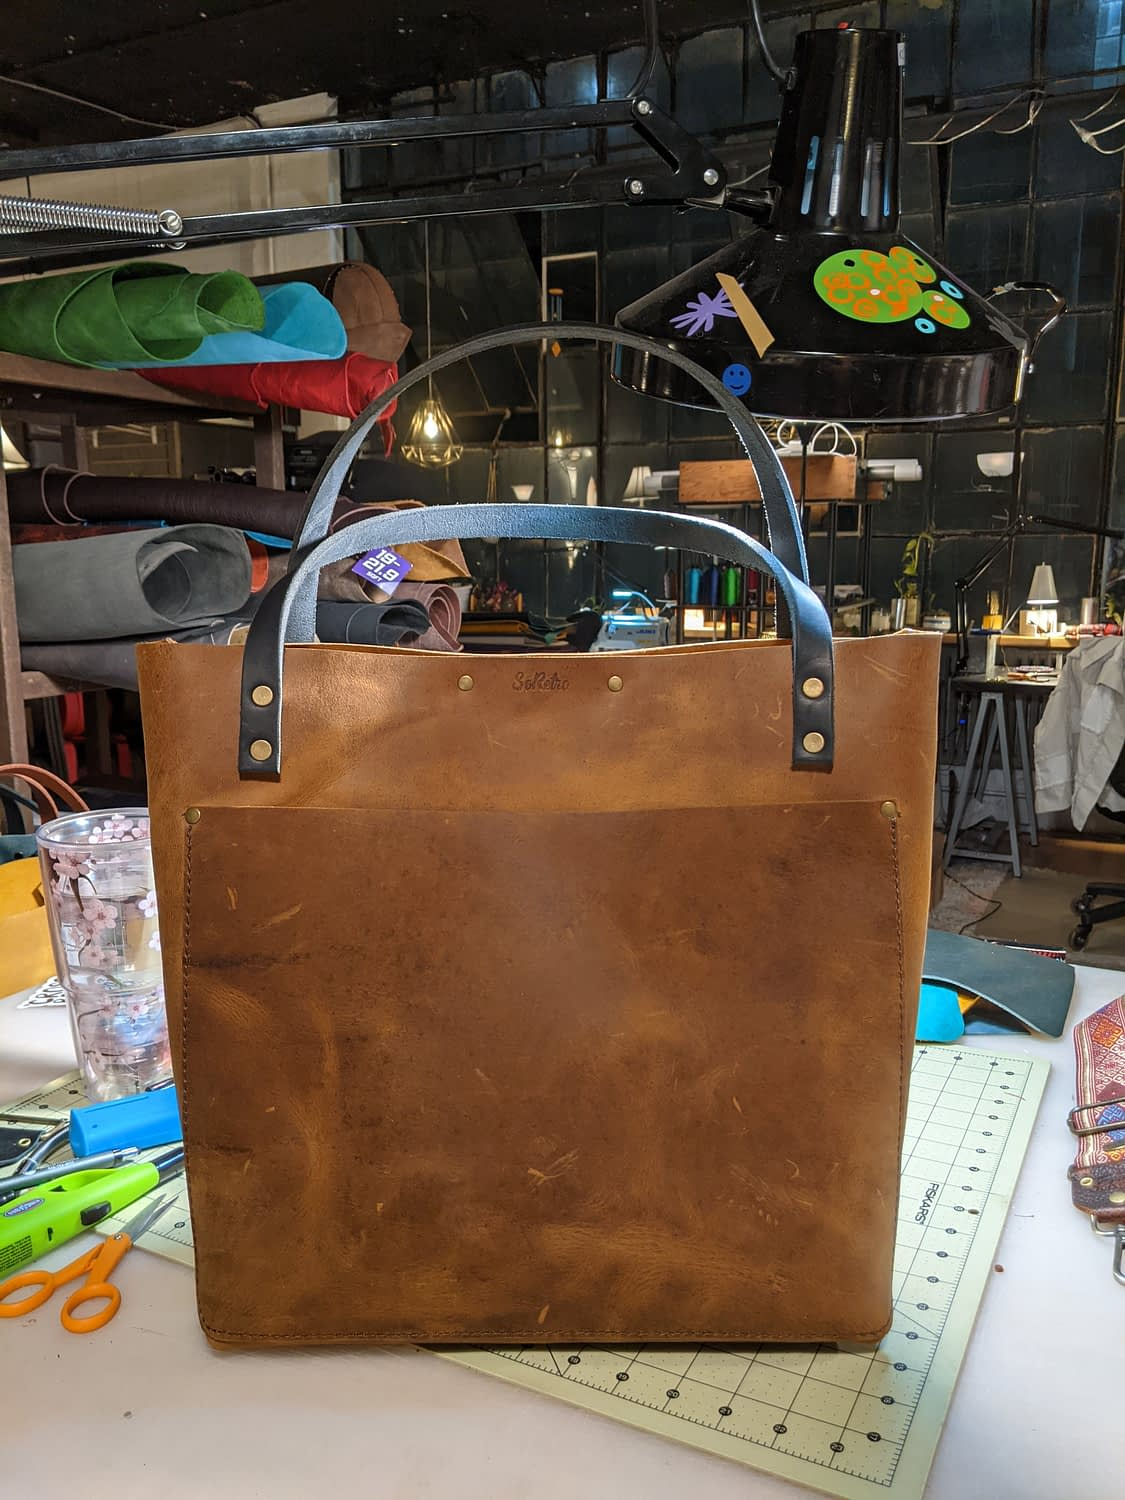 SUNDAY BYGGIE BRUNCH - SoRetro BYG FYG Leather Crossbody Tote – Mystery Neutral Color with Mystery Strap - First Edition